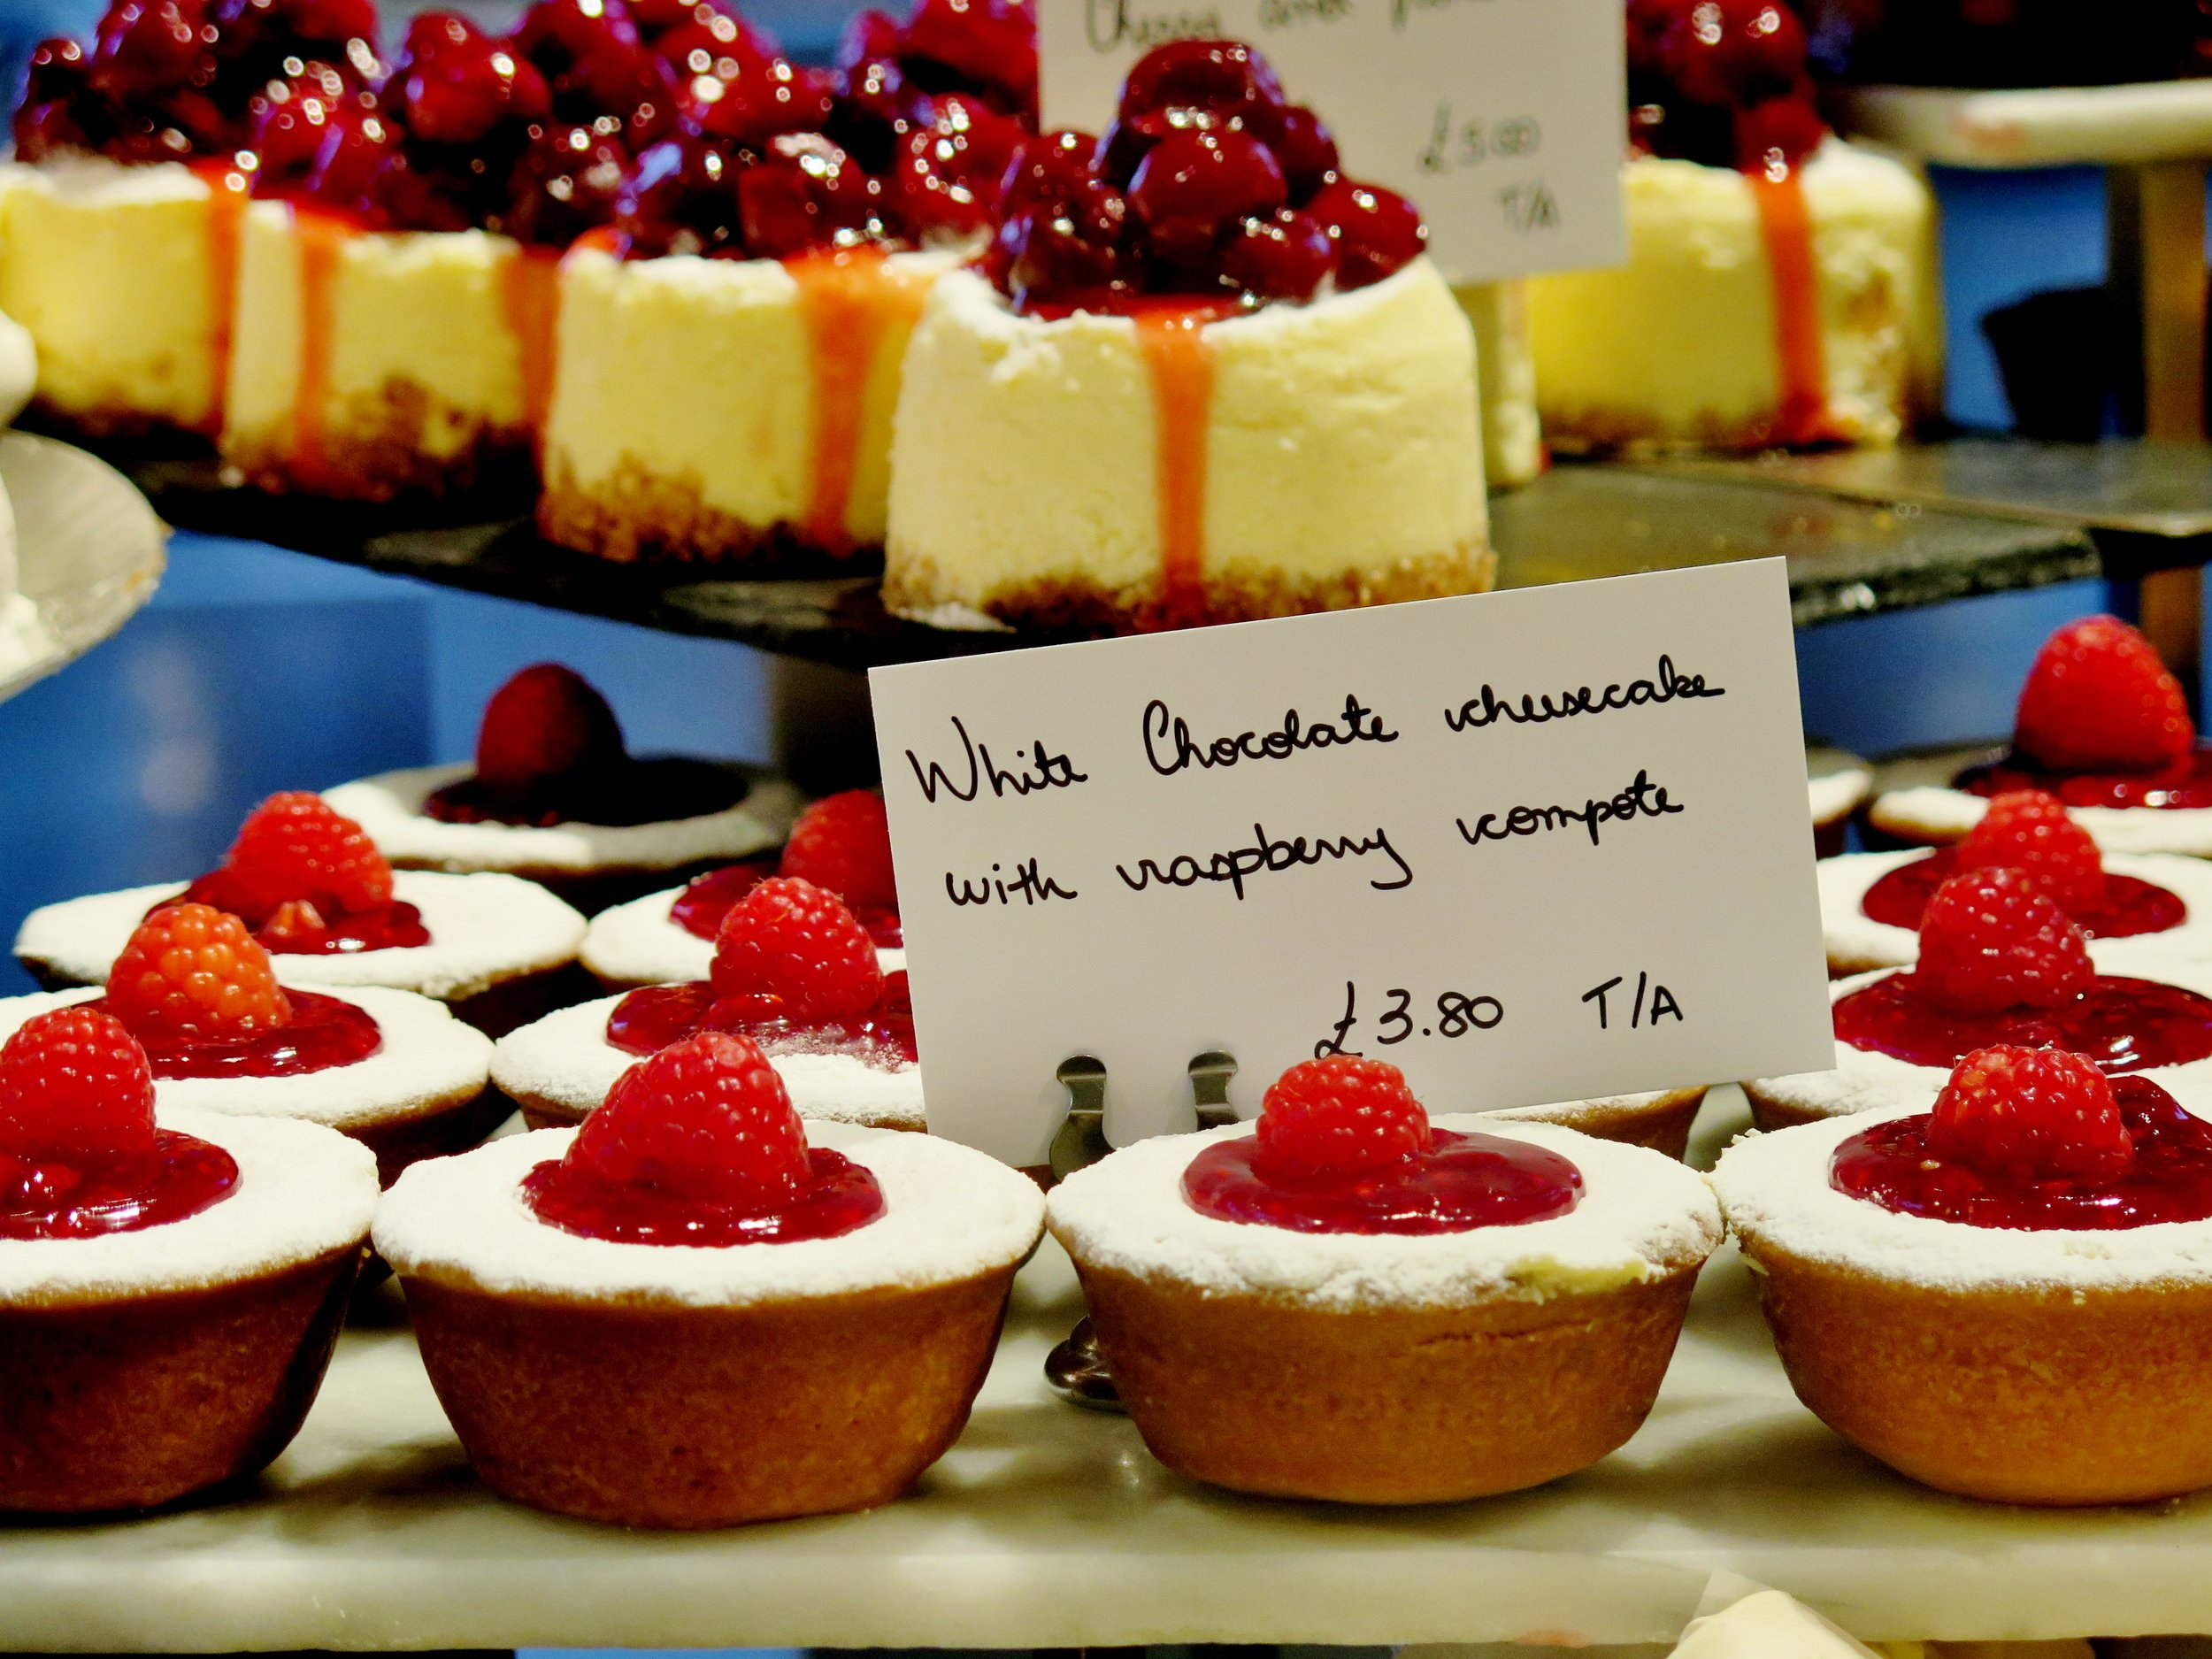 Ottolenghi - Top 5 Cakes in London